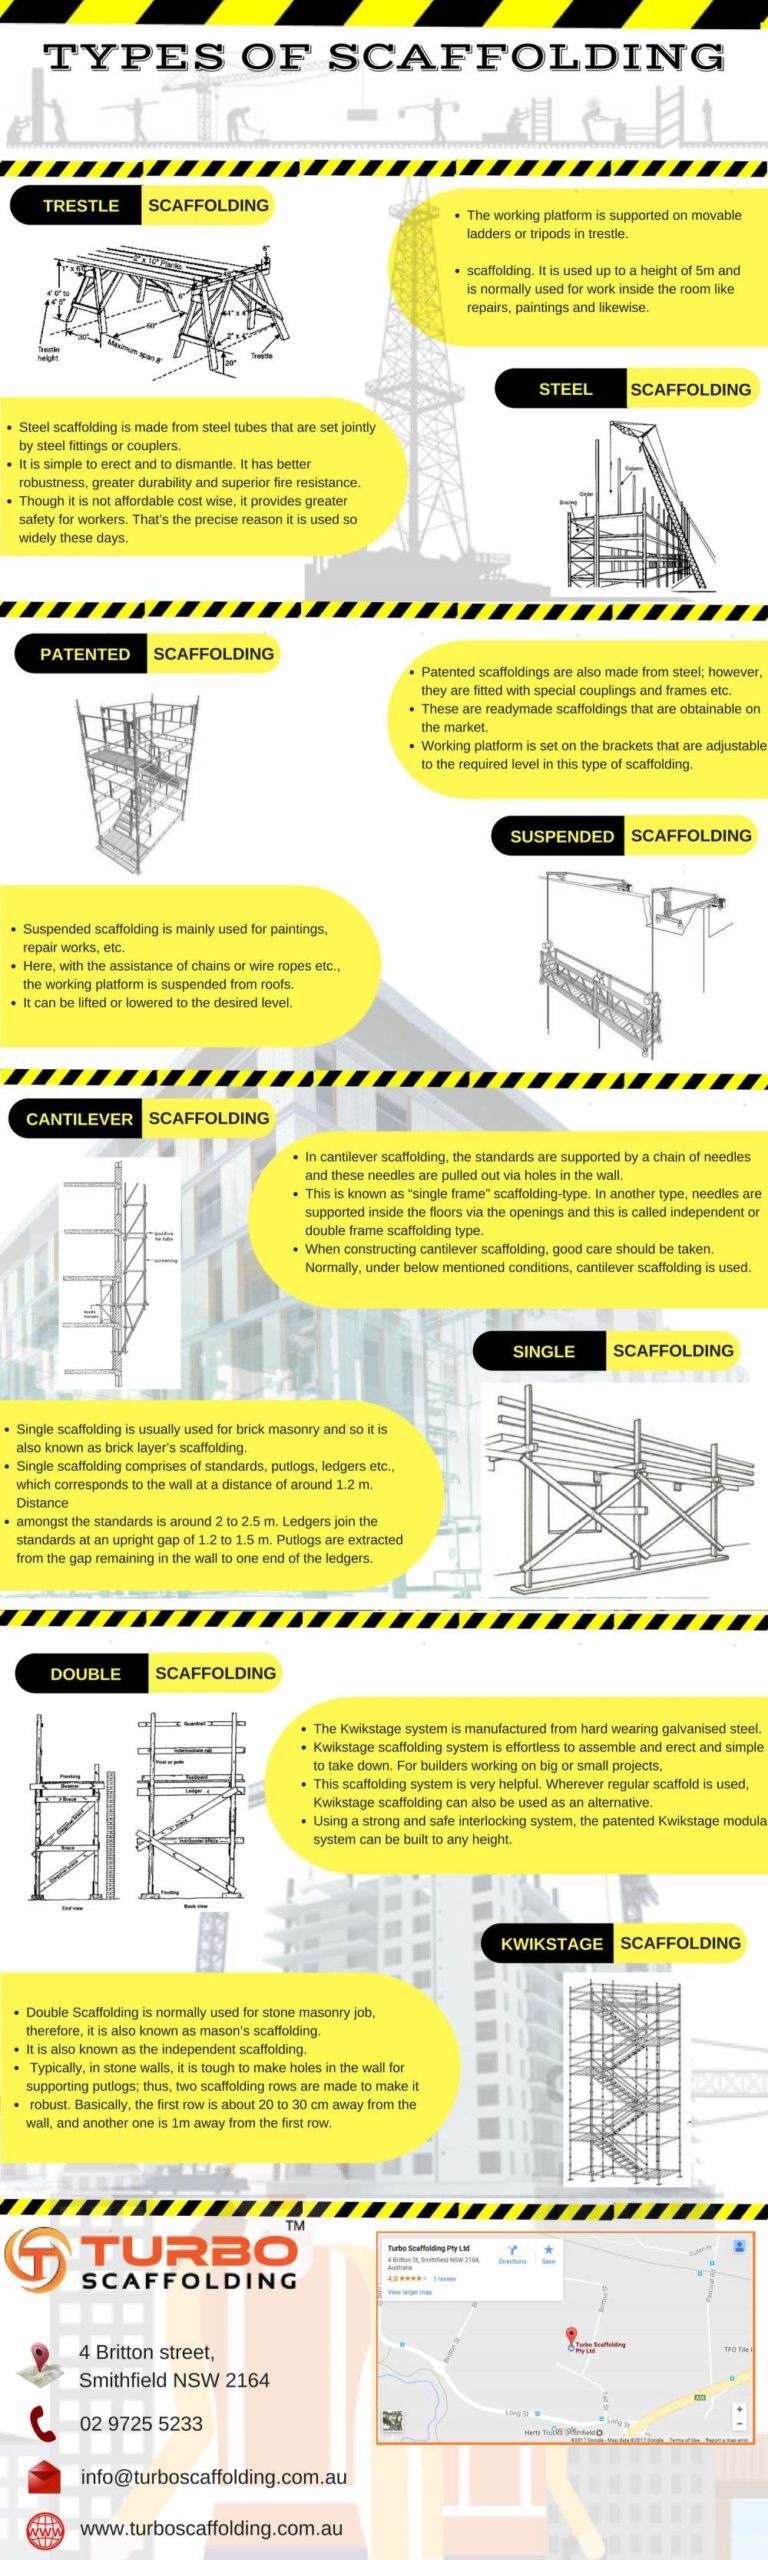 Types-of-Scaffolding